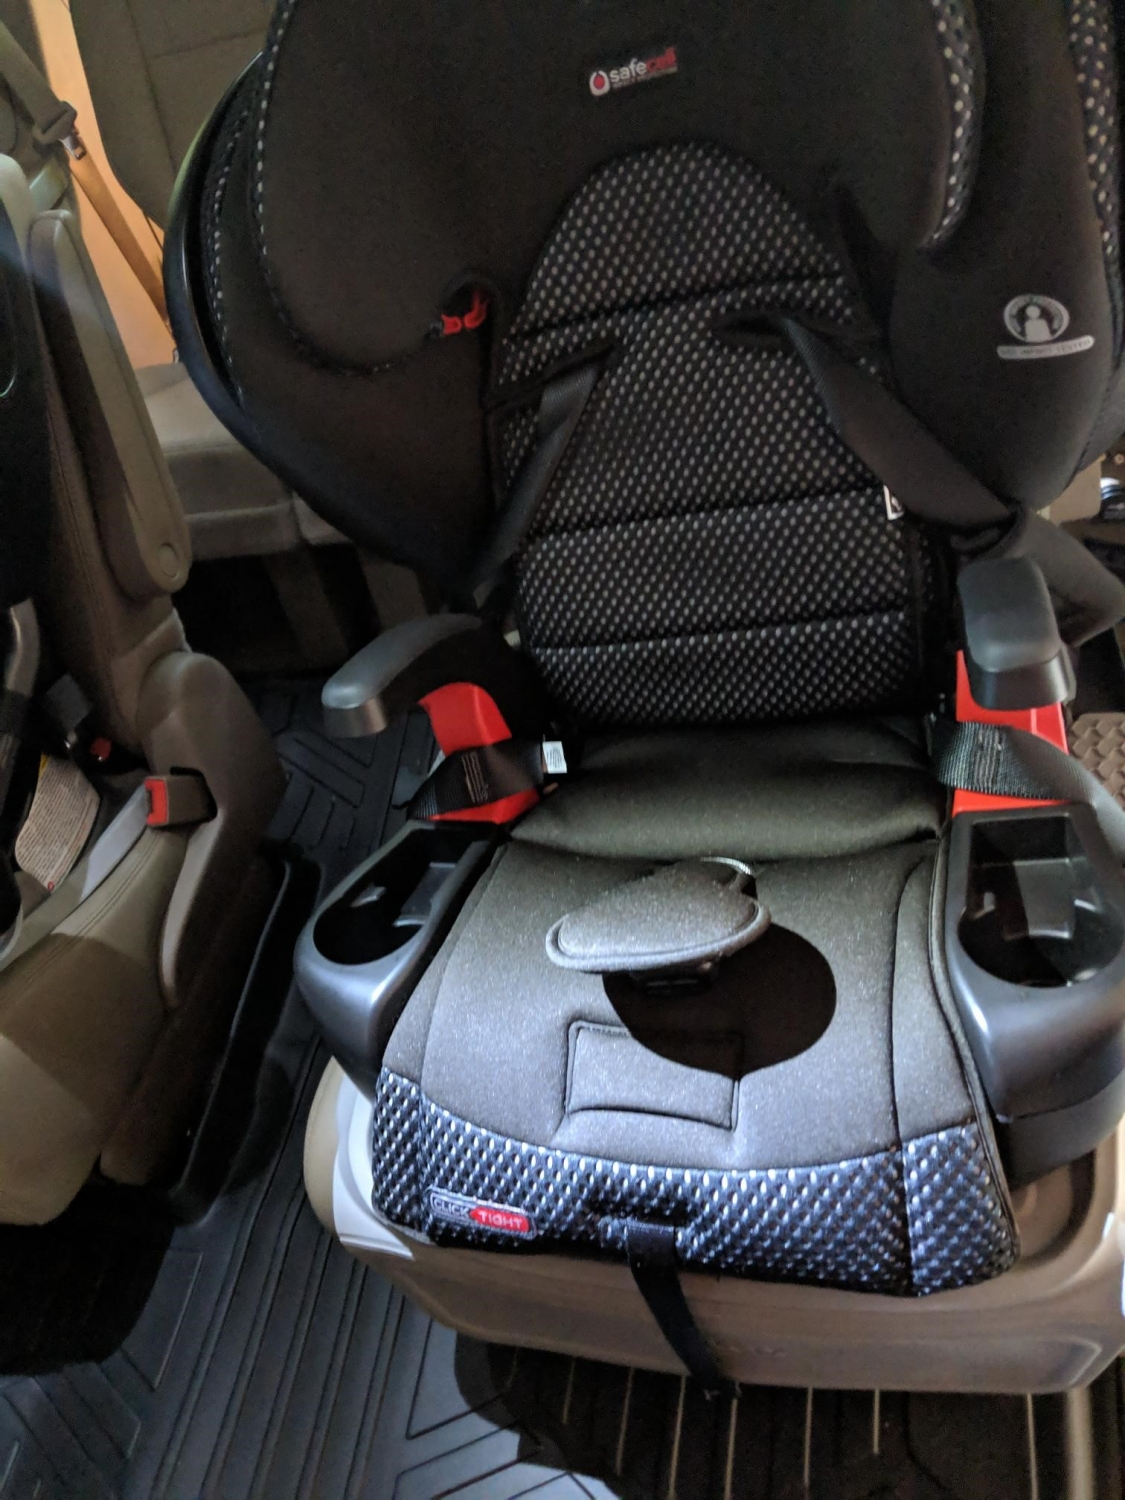 Baby Car Auto Safety Seat Belt Harness Shoulder Pad Cover Protection Cover Cushion Support Car Pillow Seat Belts Activity & Gear Mother & Kids Activity & Gear